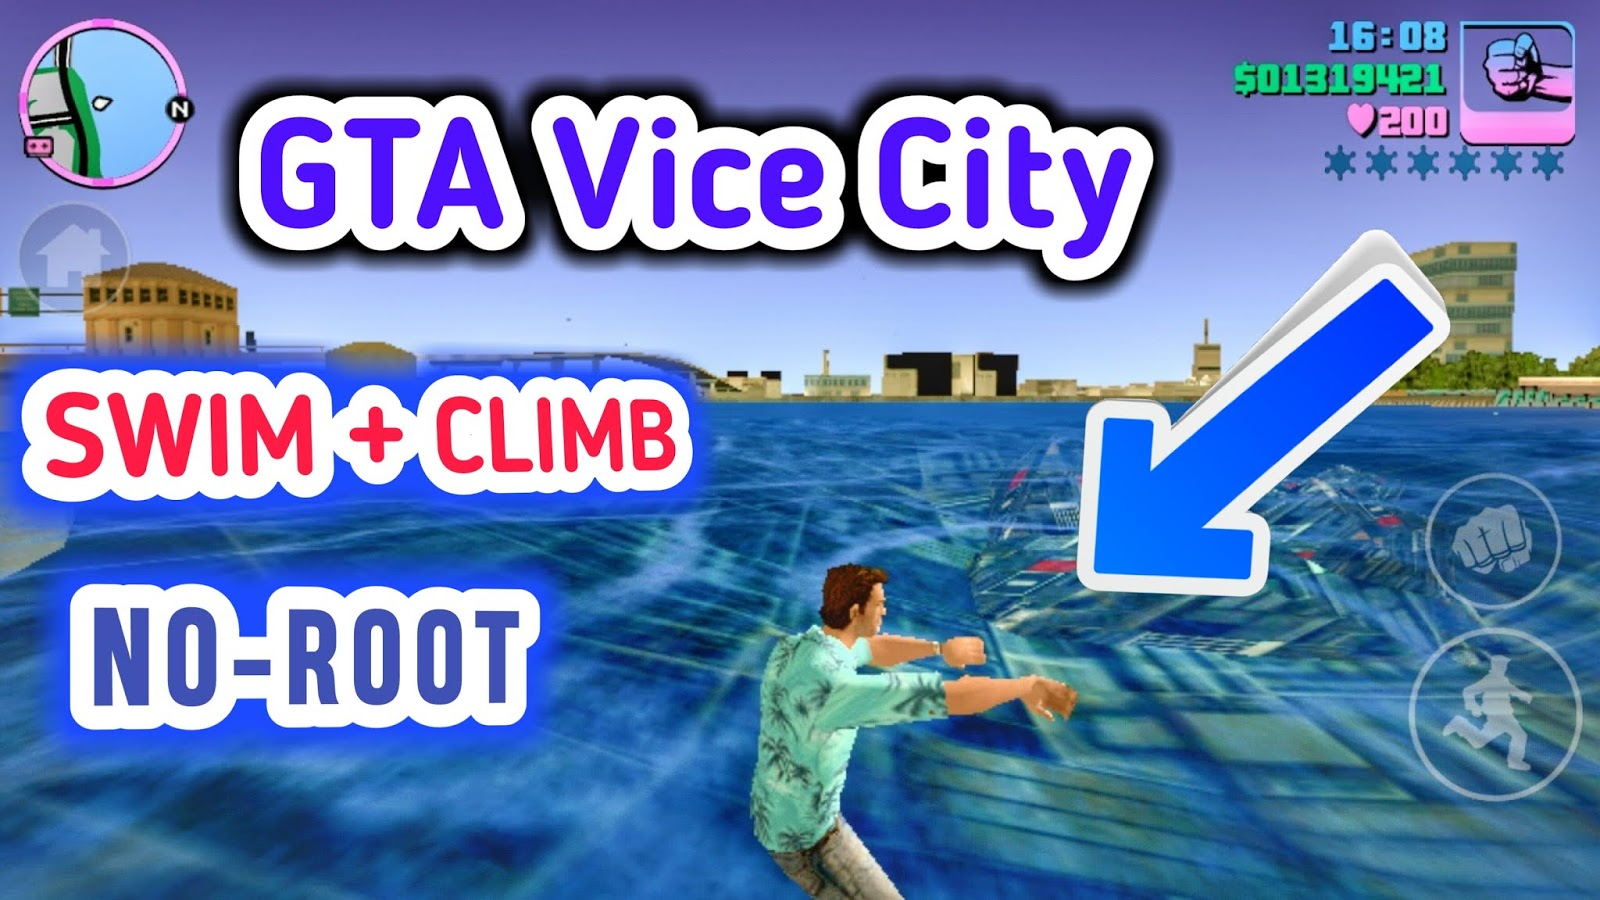 Gta vice city zippy | GTA Vice City Download Torrent For PC